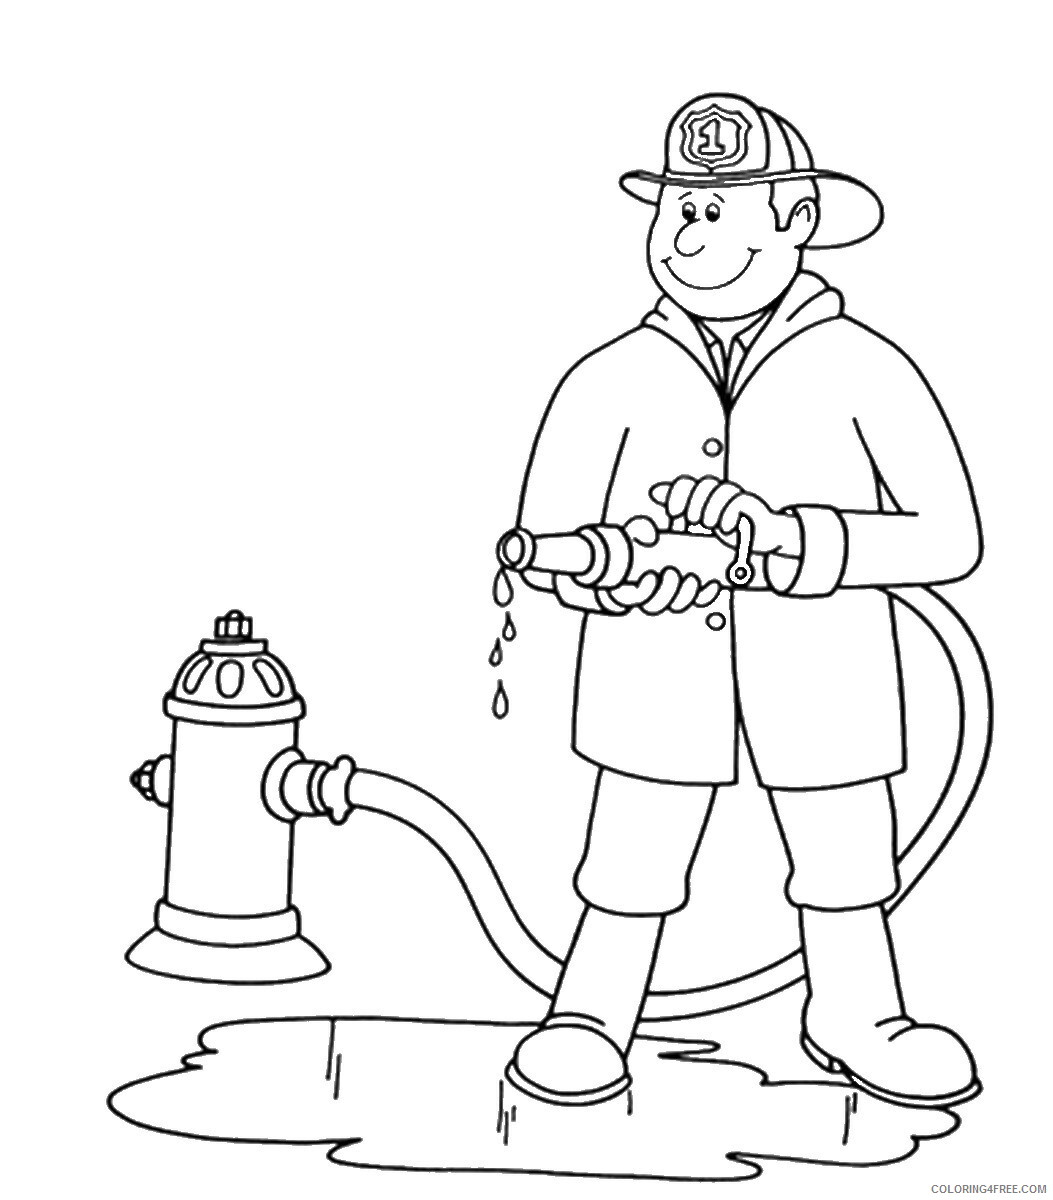 Firefighter Coloring Pages for Kids firefighters_31 Printable 2021 252 Coloring4free